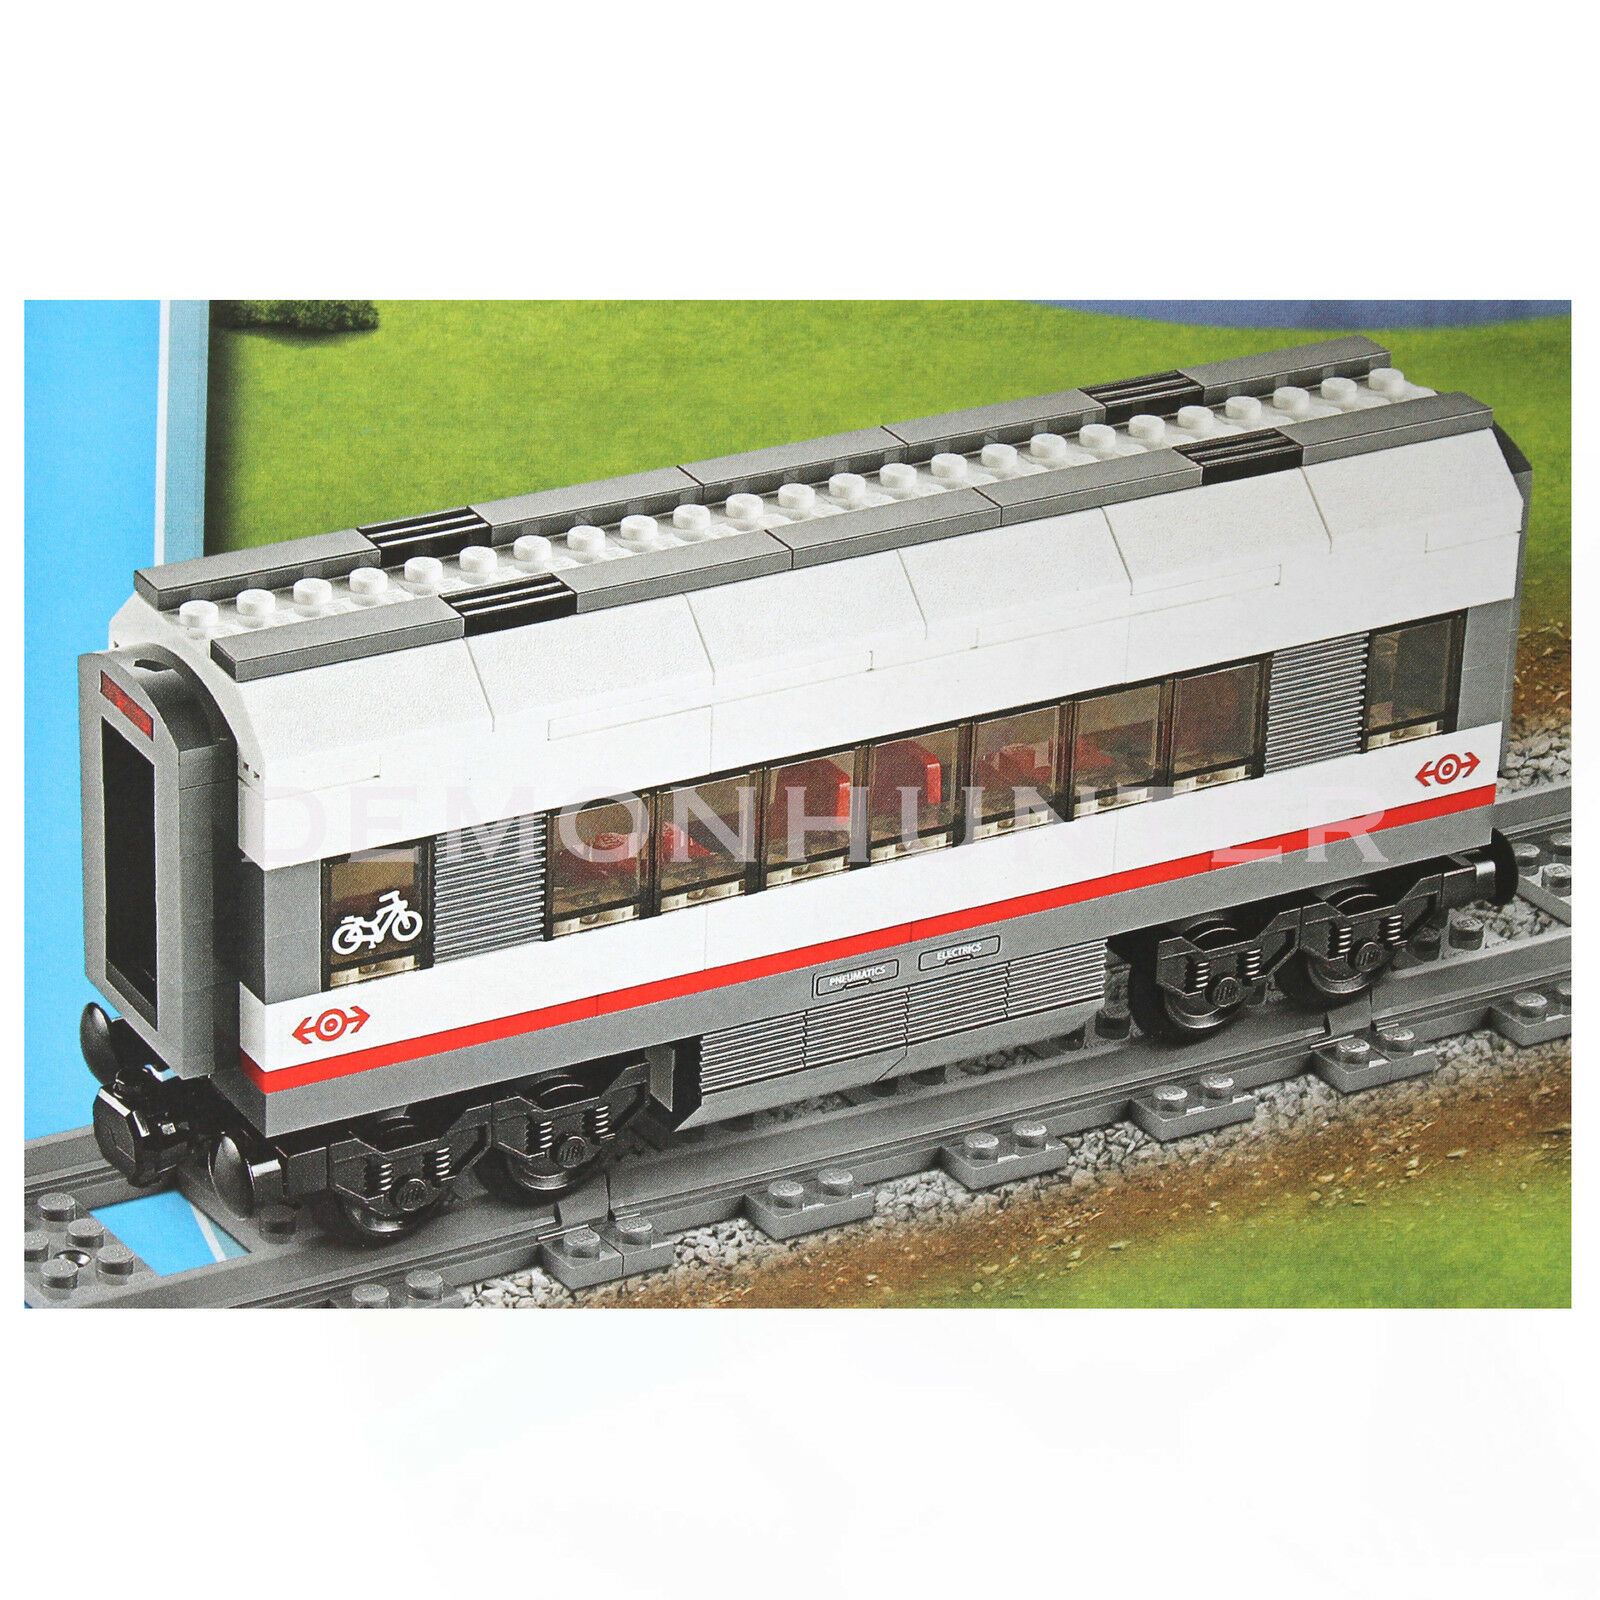 Lego High Speed Carriage Brand New From 60051 High Speed Passenger